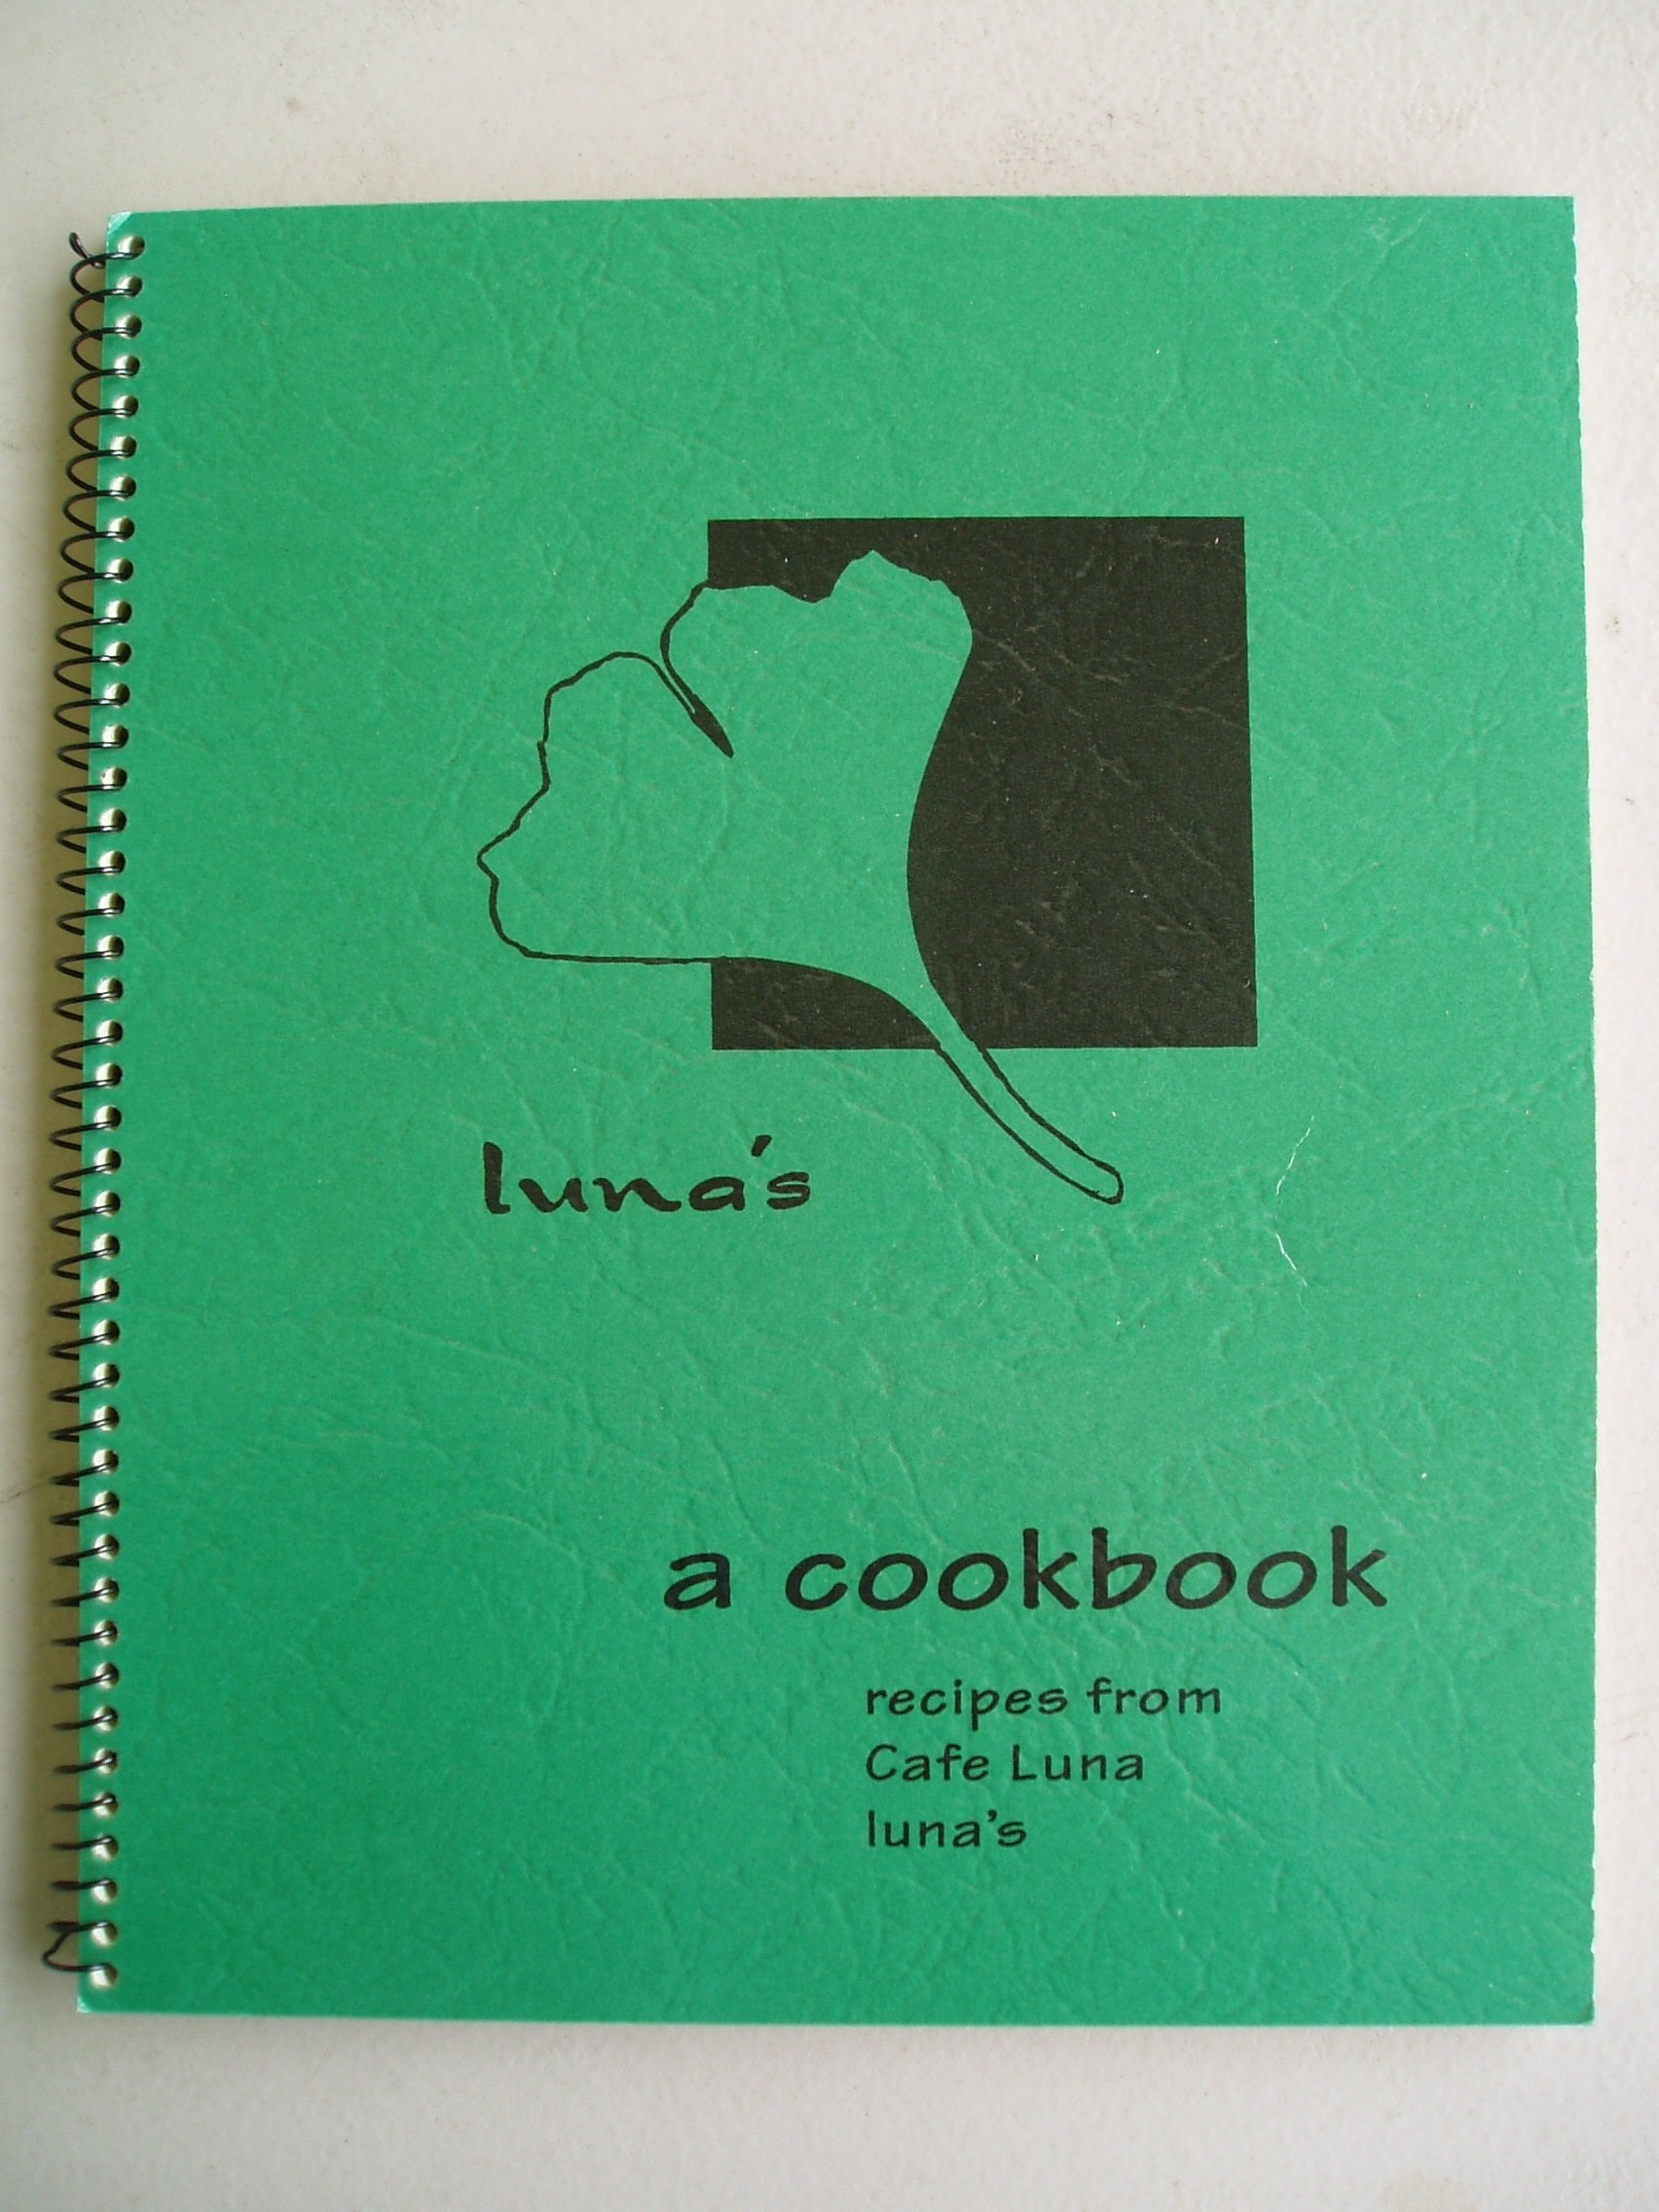 Luna's (A Cookbook) Recipes From Cafe Luna, Victoria Benenate; Tom Benenate